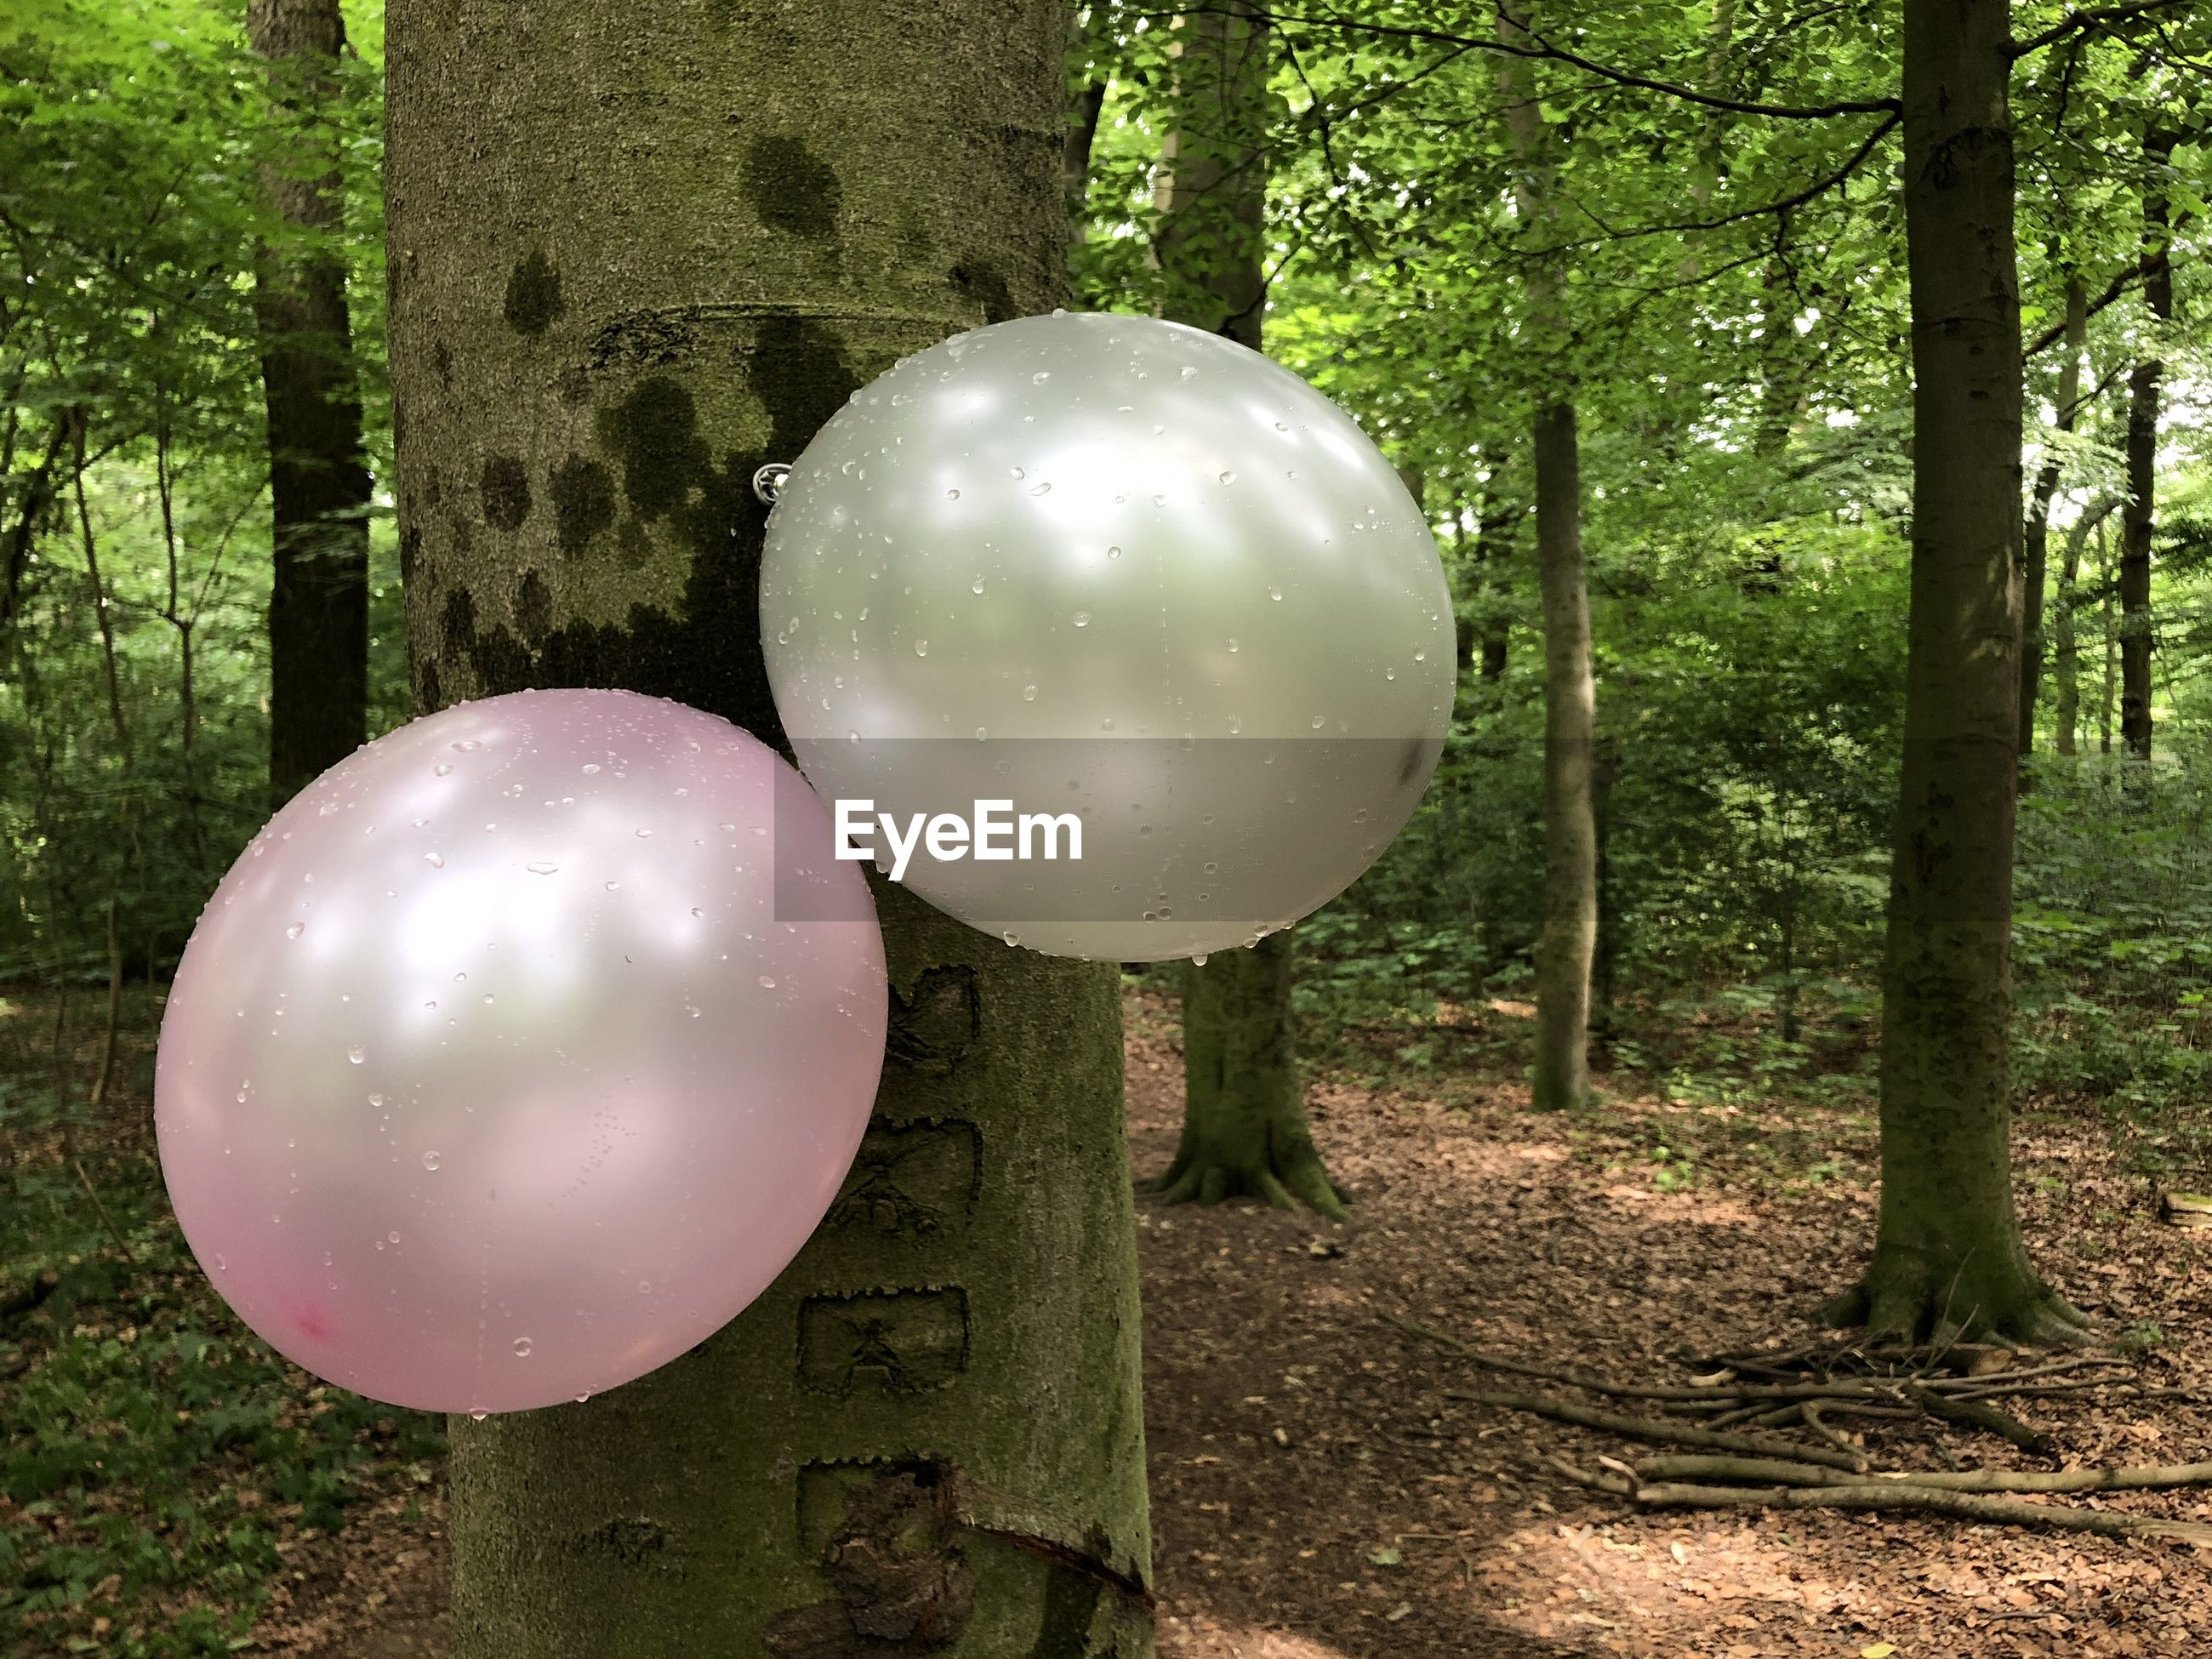 Wet balloons on tree trunk in forest